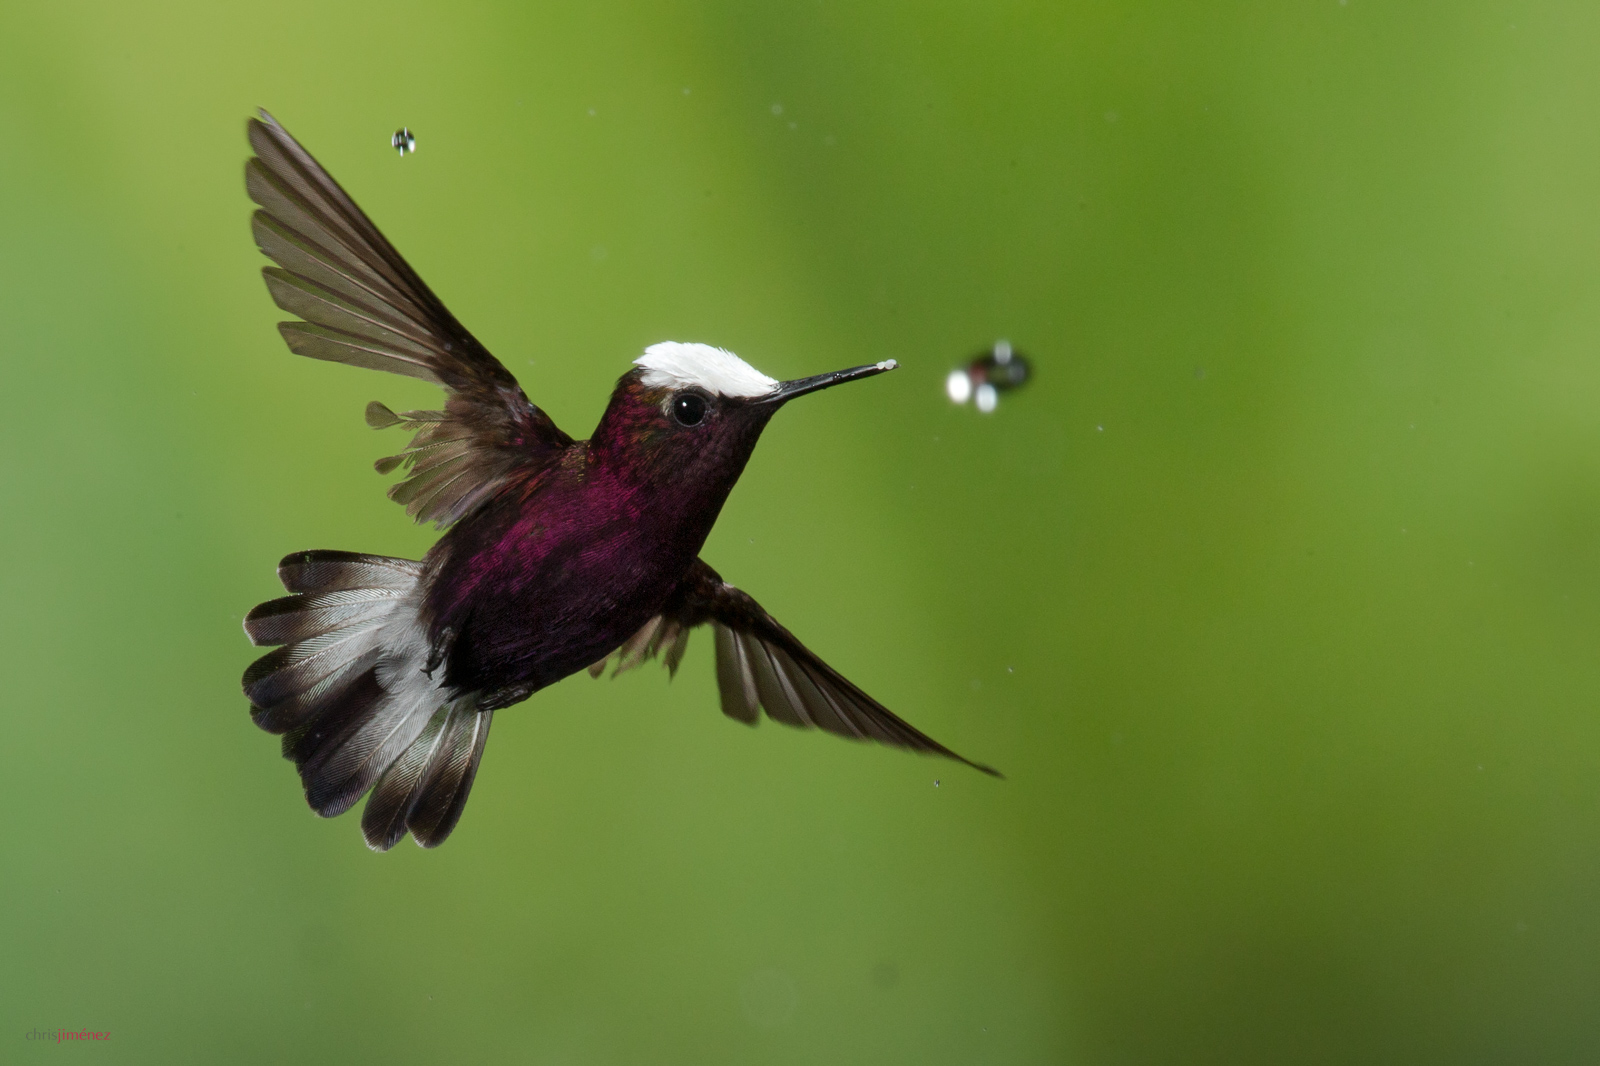 Snowcap (Microchera albocoronata) in flight under the rain with water drop at the low lands of Costa Rica